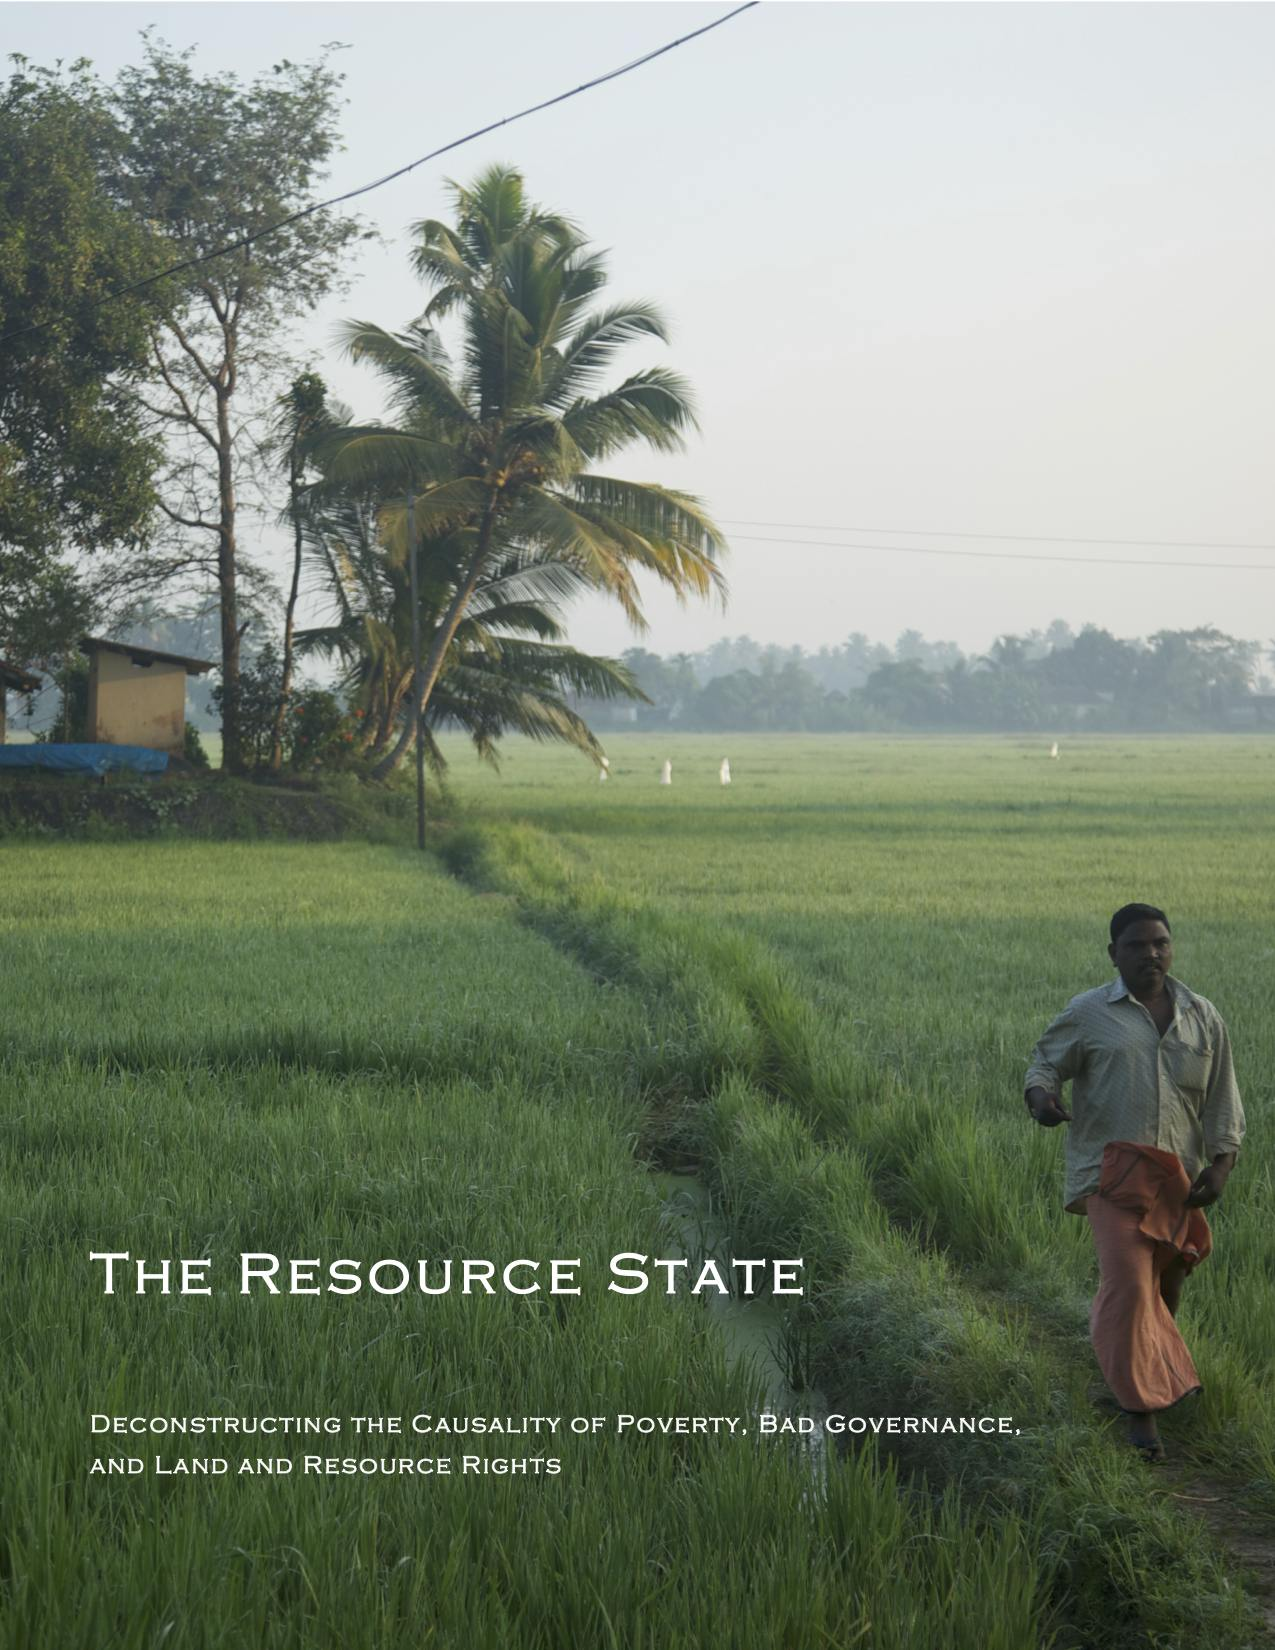 The Resource State: Deconstructing the Causality of Poverty, Bad Governance, and Land and Resource Rights